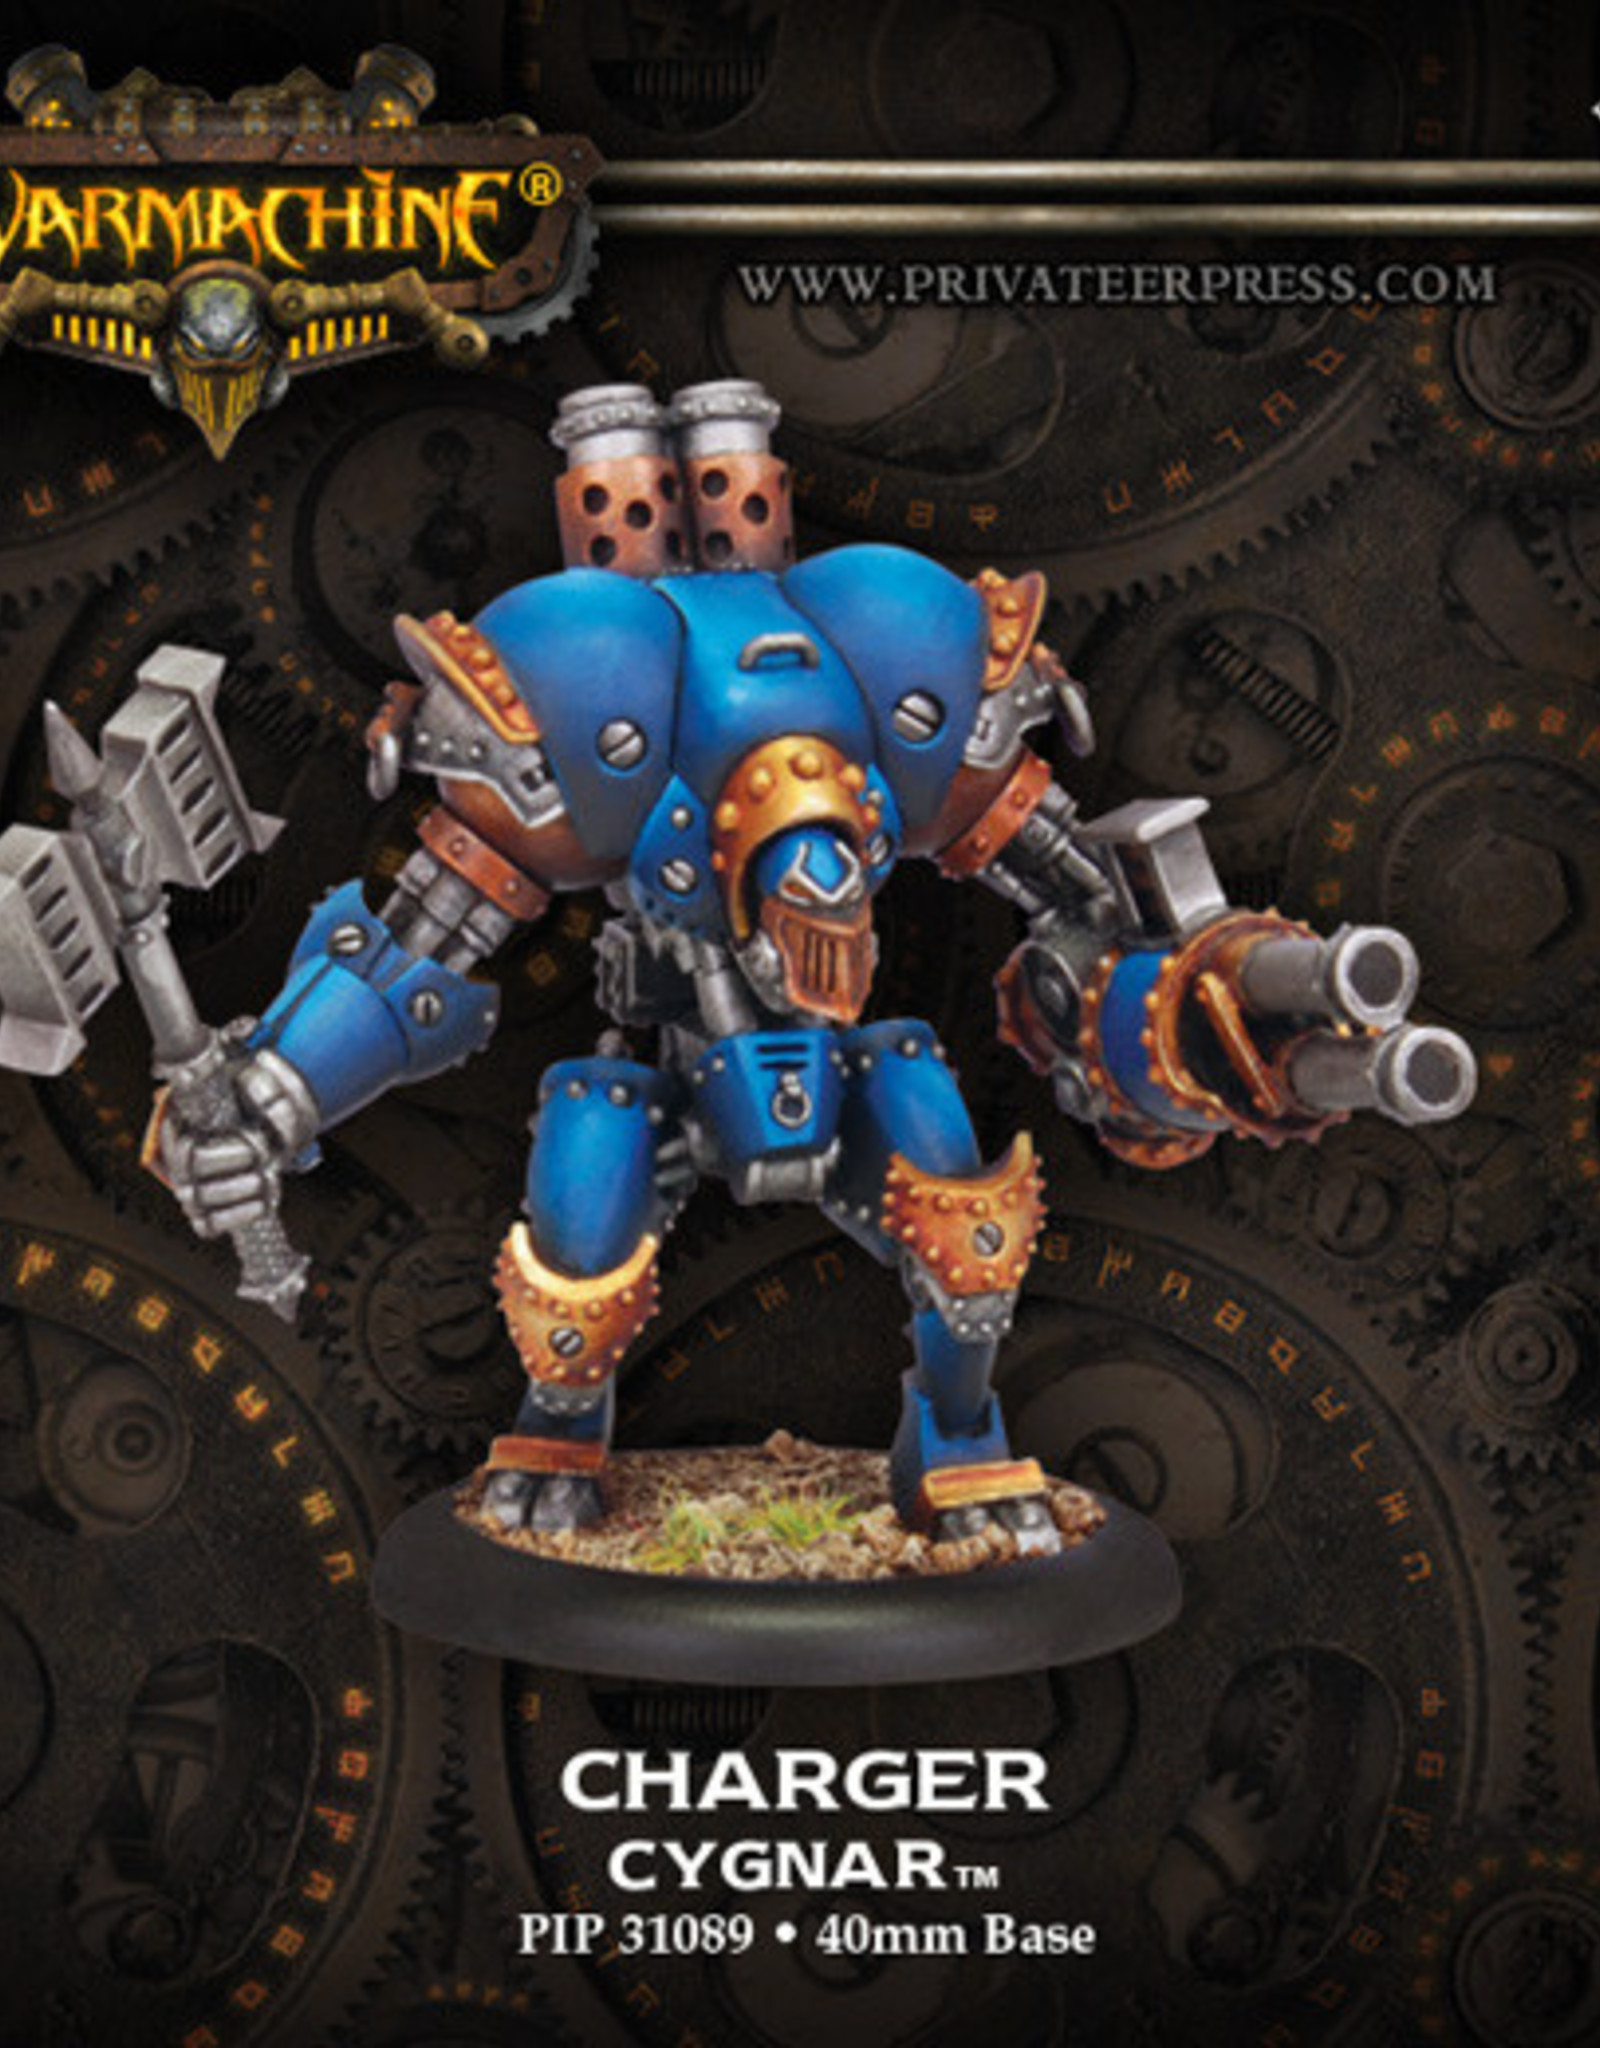 Warmachine Cygnar - Charger